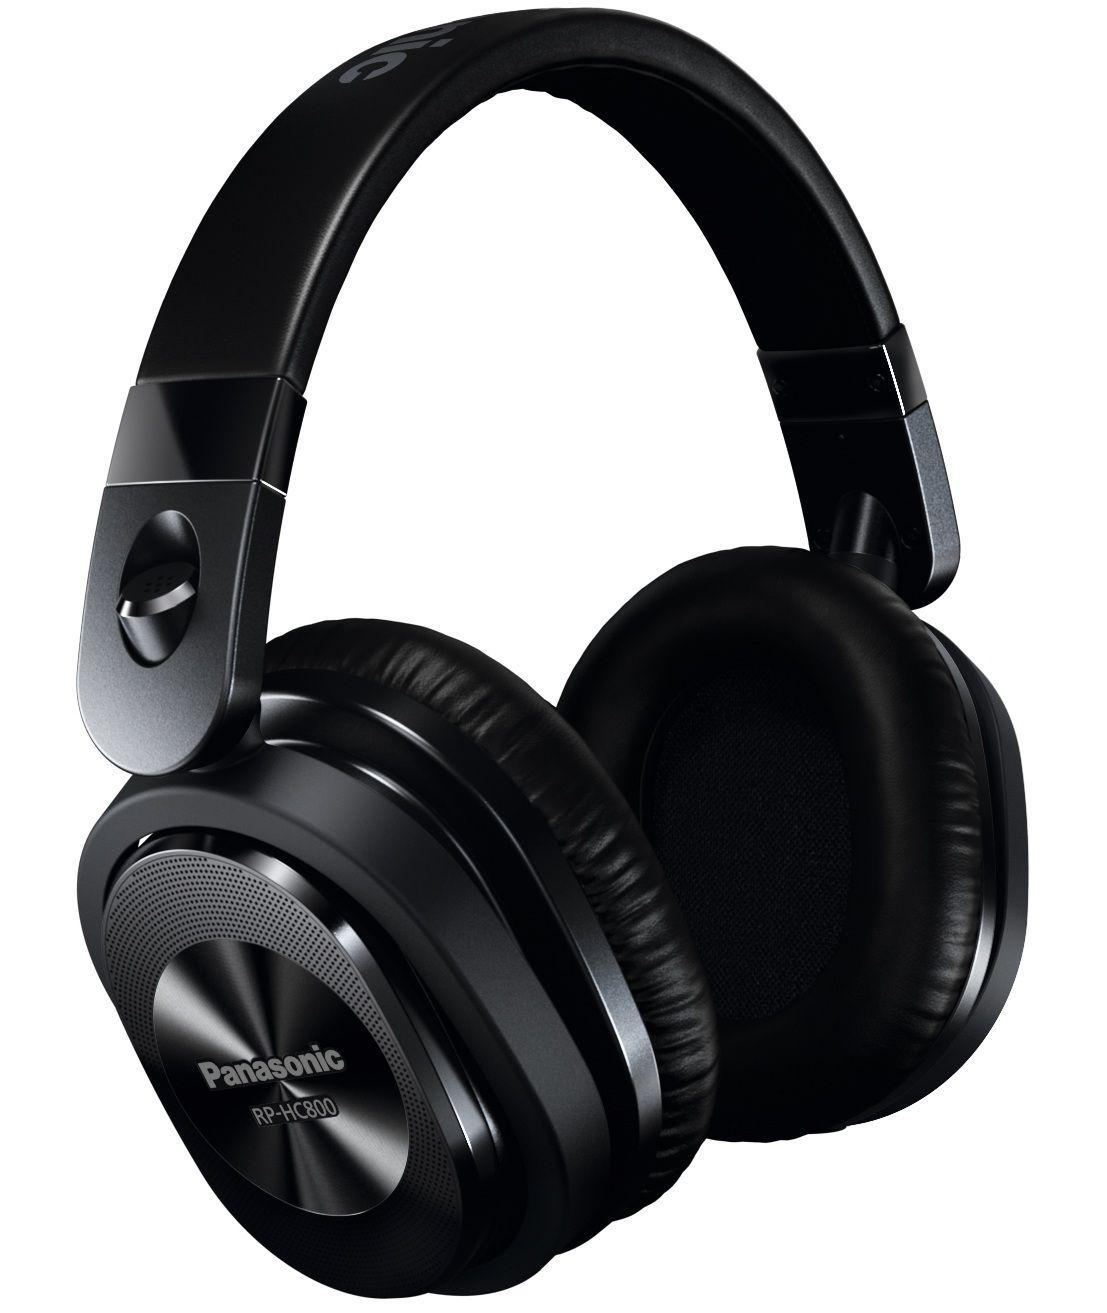 Panasonic Premium Noise Cancelling Over-the-Ear Headphones